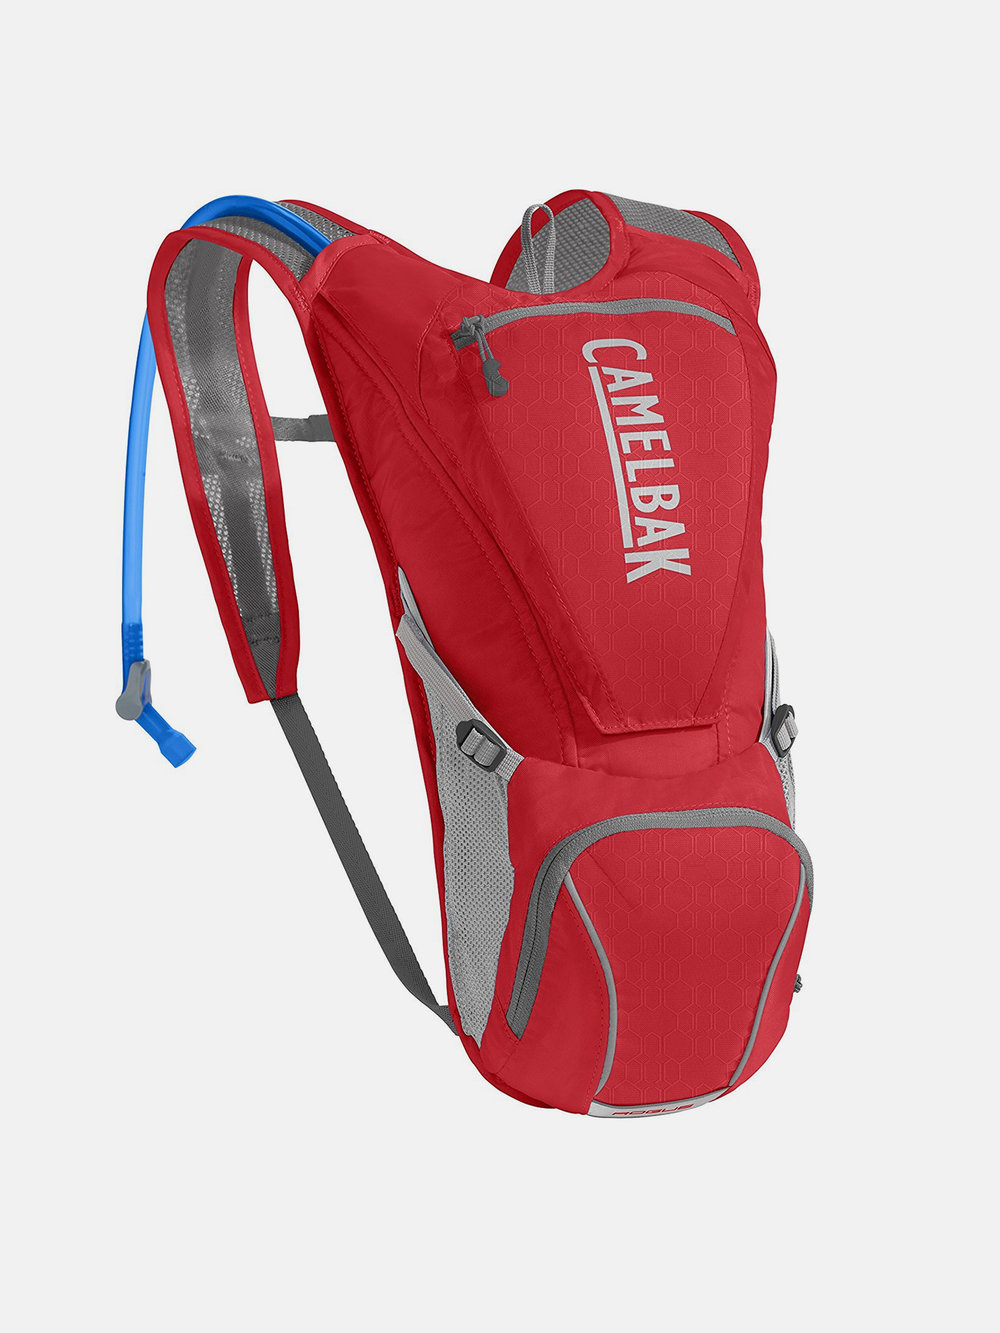 Camelbak 85 ounce Hydration Pack - $68.99